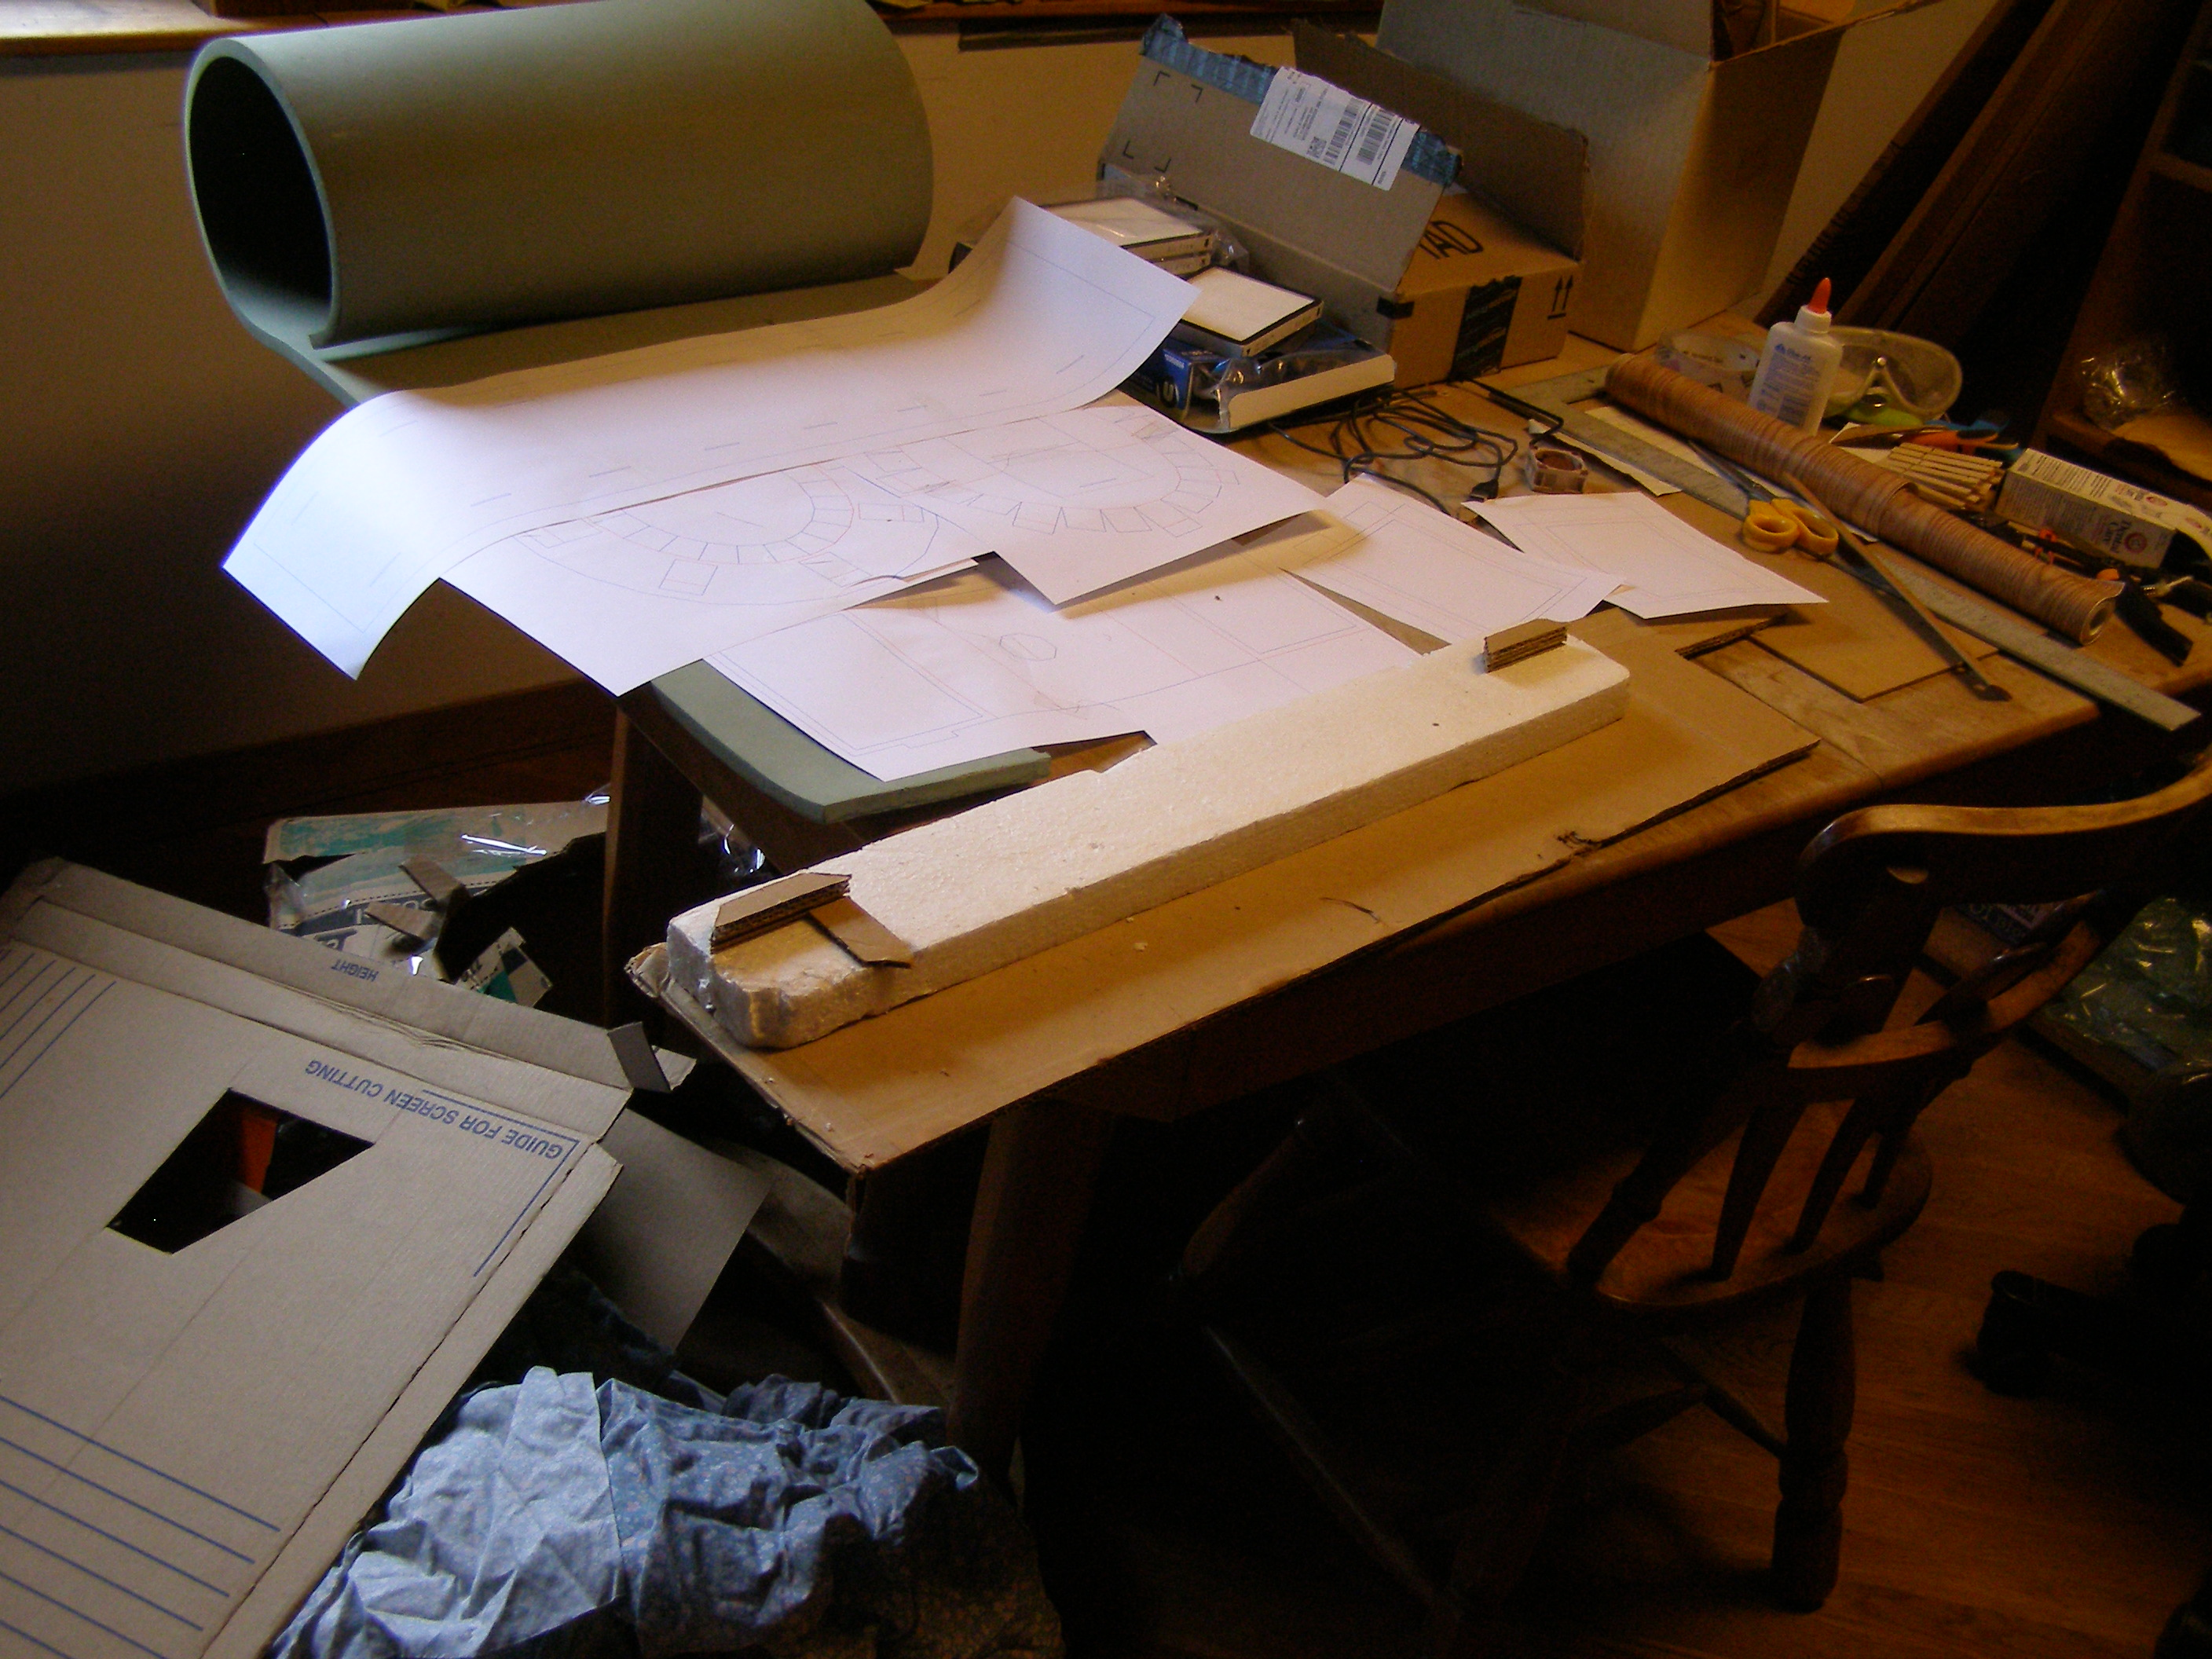 [Photo: a pile of various materials, described below.]